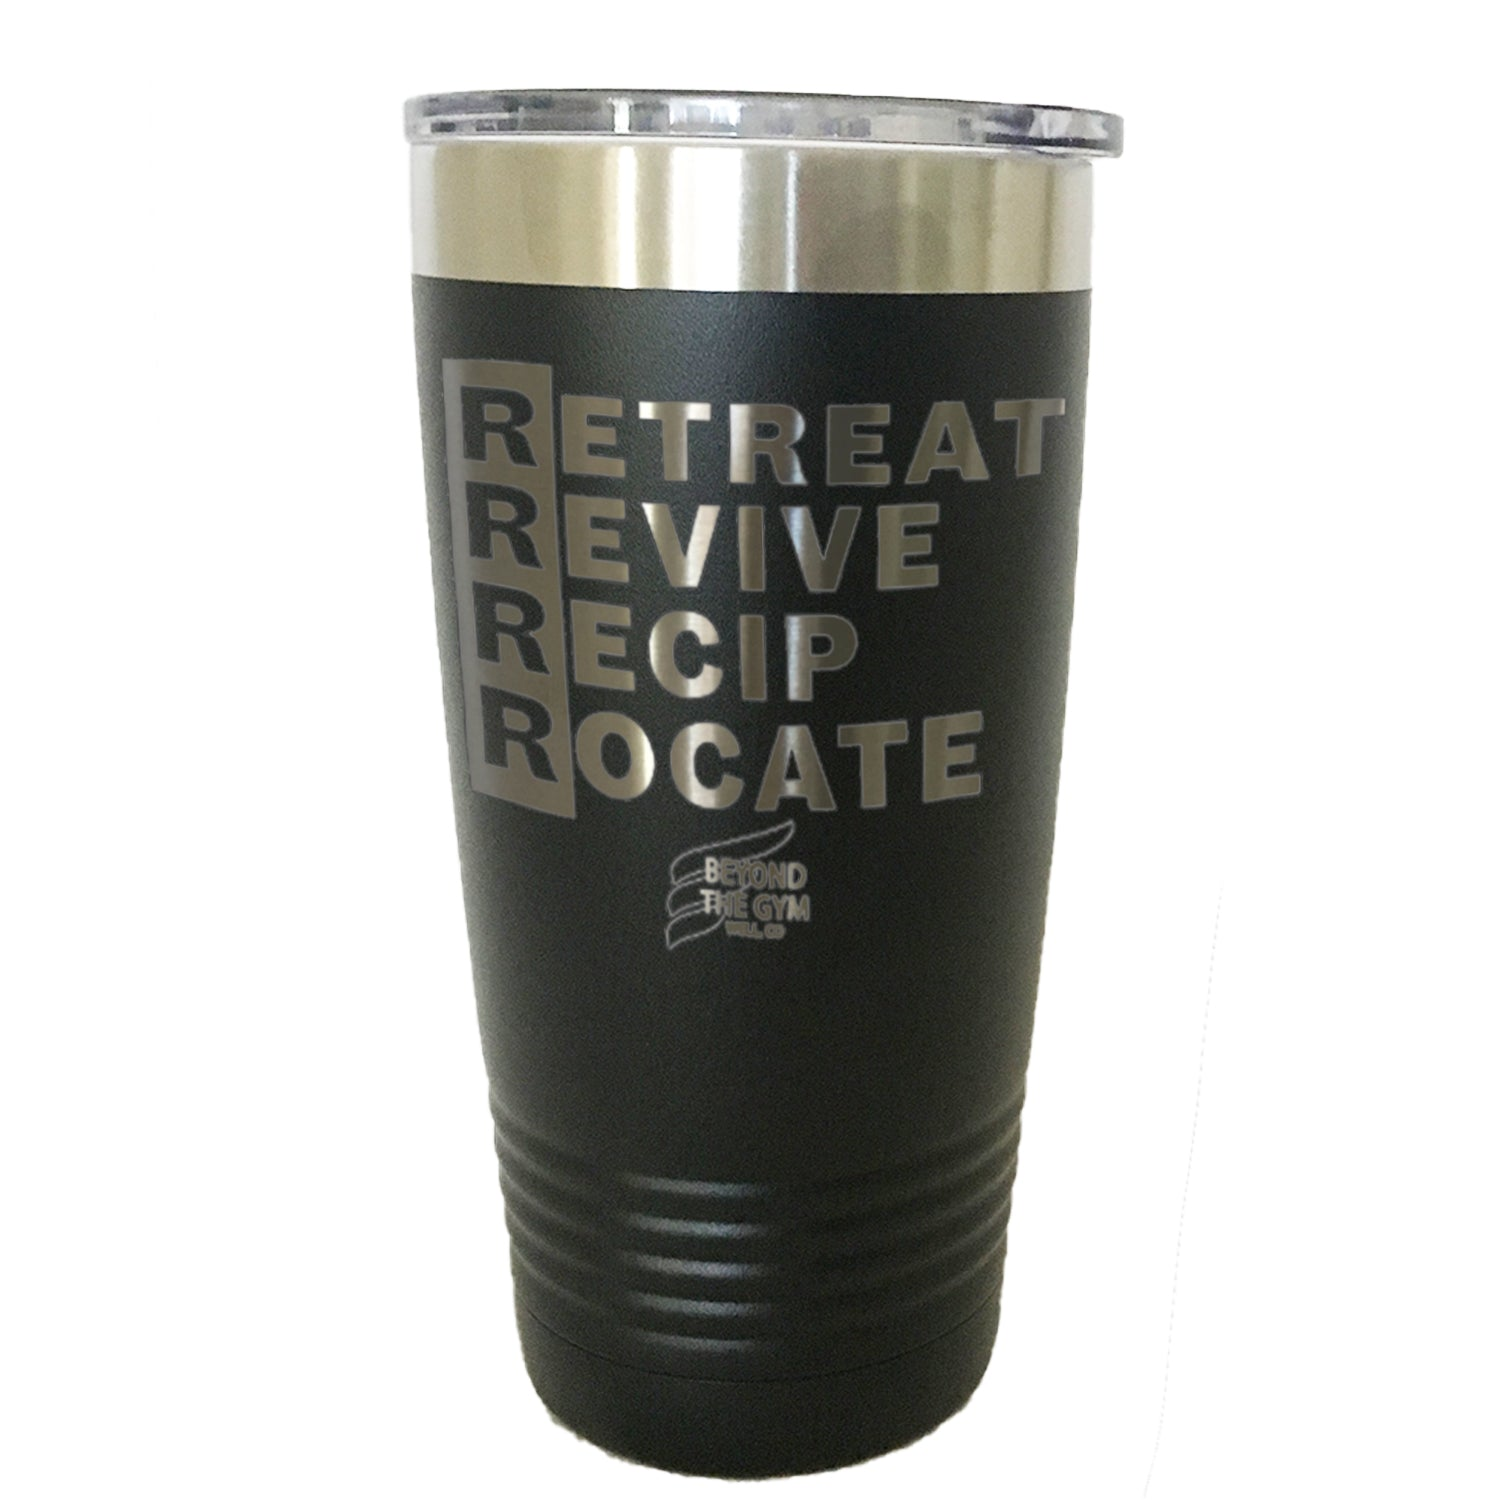 Retreat Revive Reciprocate Beyond The Gym Well Co. Tumbler Drinkware